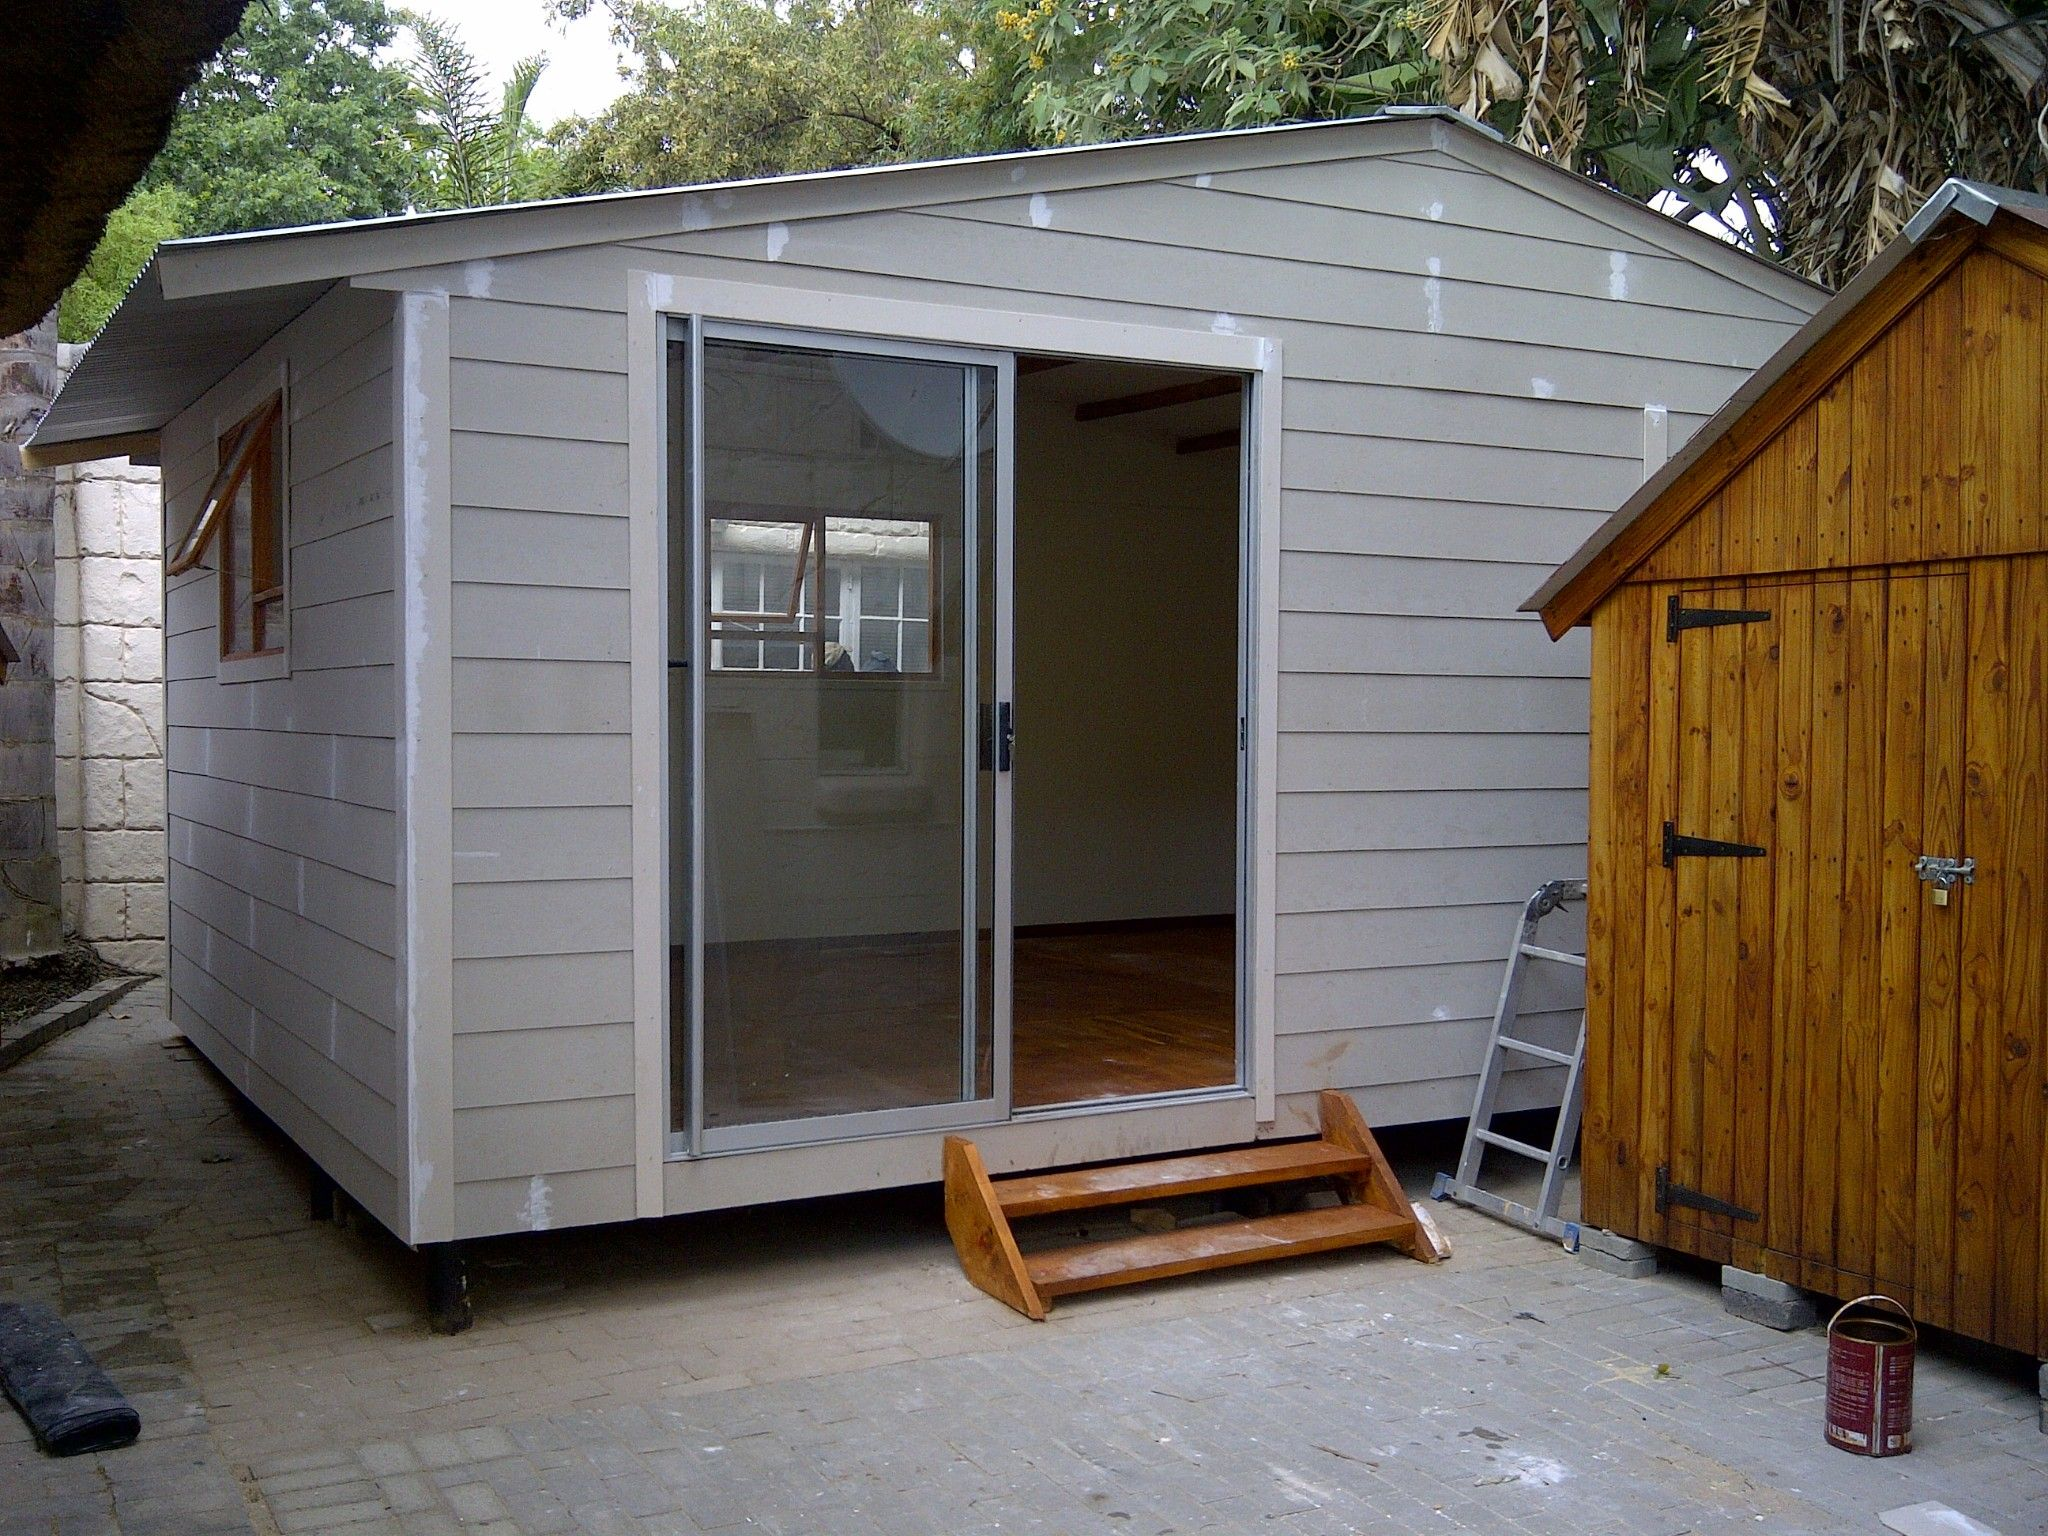 Wendy shop product nutec wendy houses office shed for Wendy house ideas inside